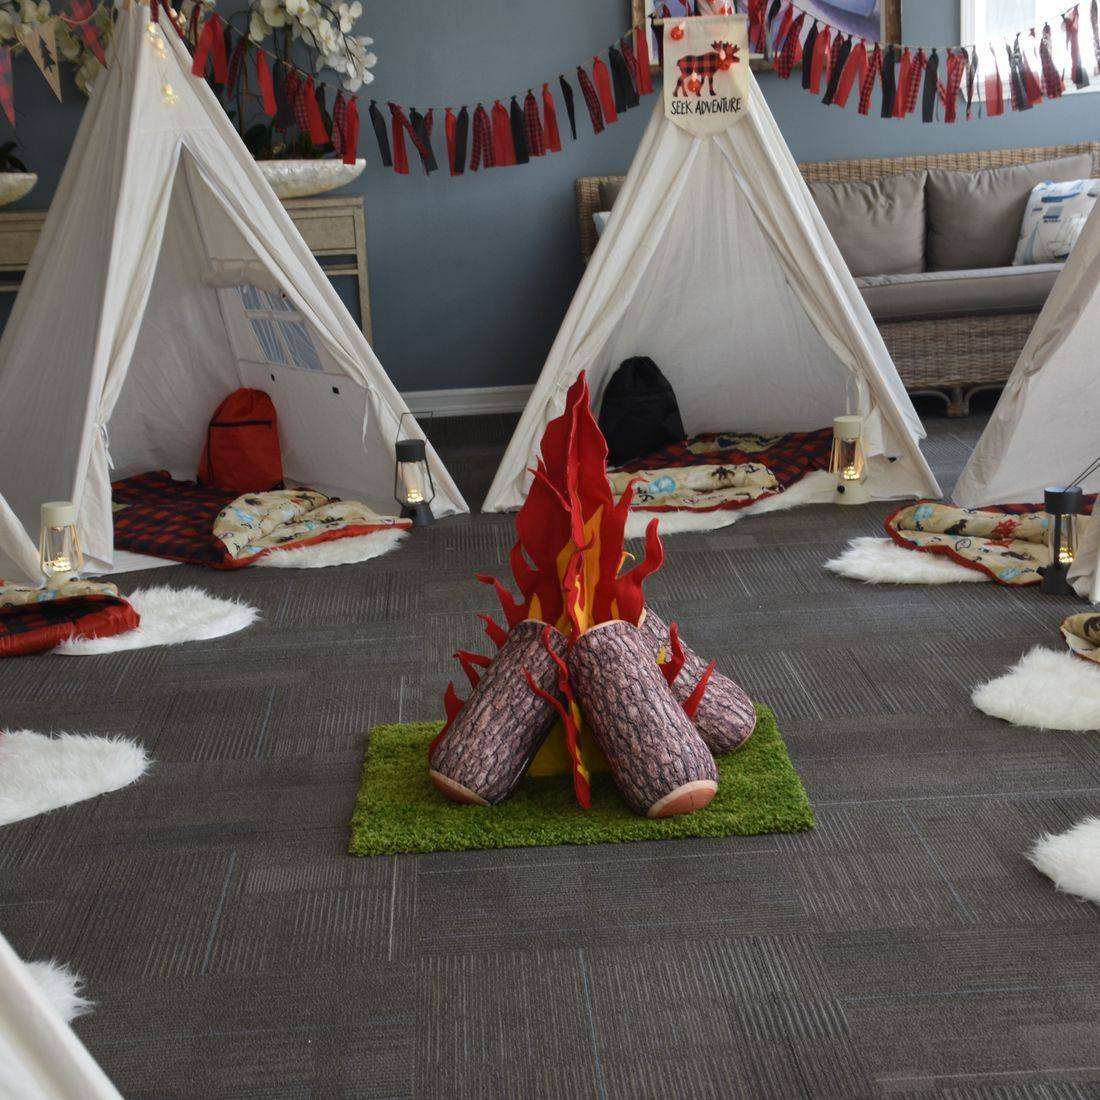 Kids party rentals, teepee rentals, party rentals, kids party planner, kids birthday parties, kids birthday party, teepees, indoor camping, pretend campfire, Newport Beach, CA, Orange County